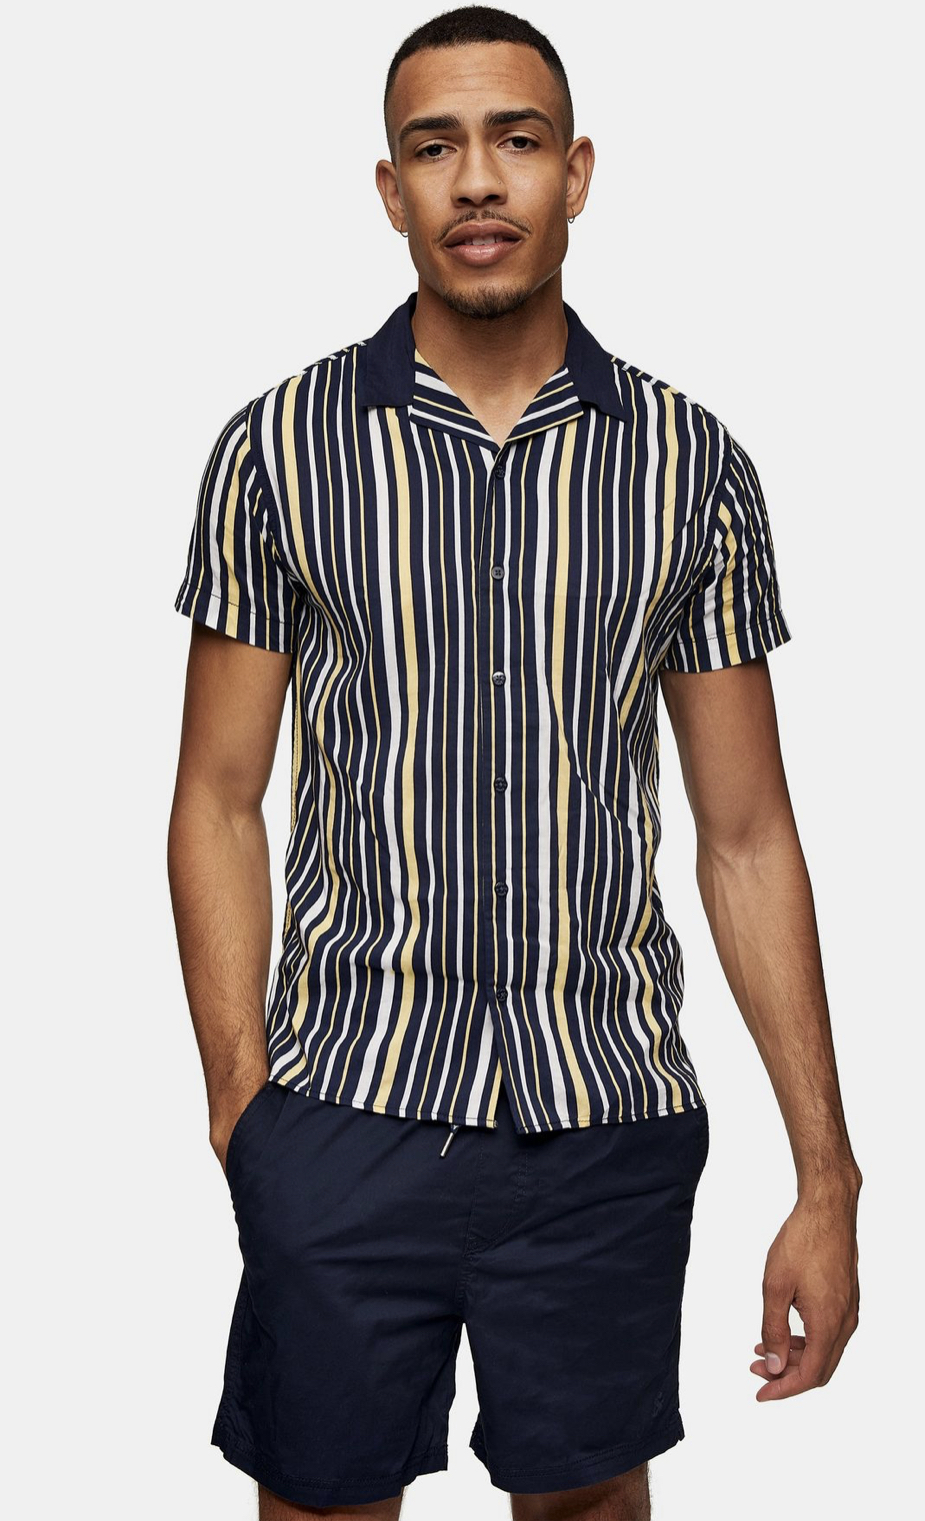 JACK & JONES Navy, White And Yellow Revere Shirt